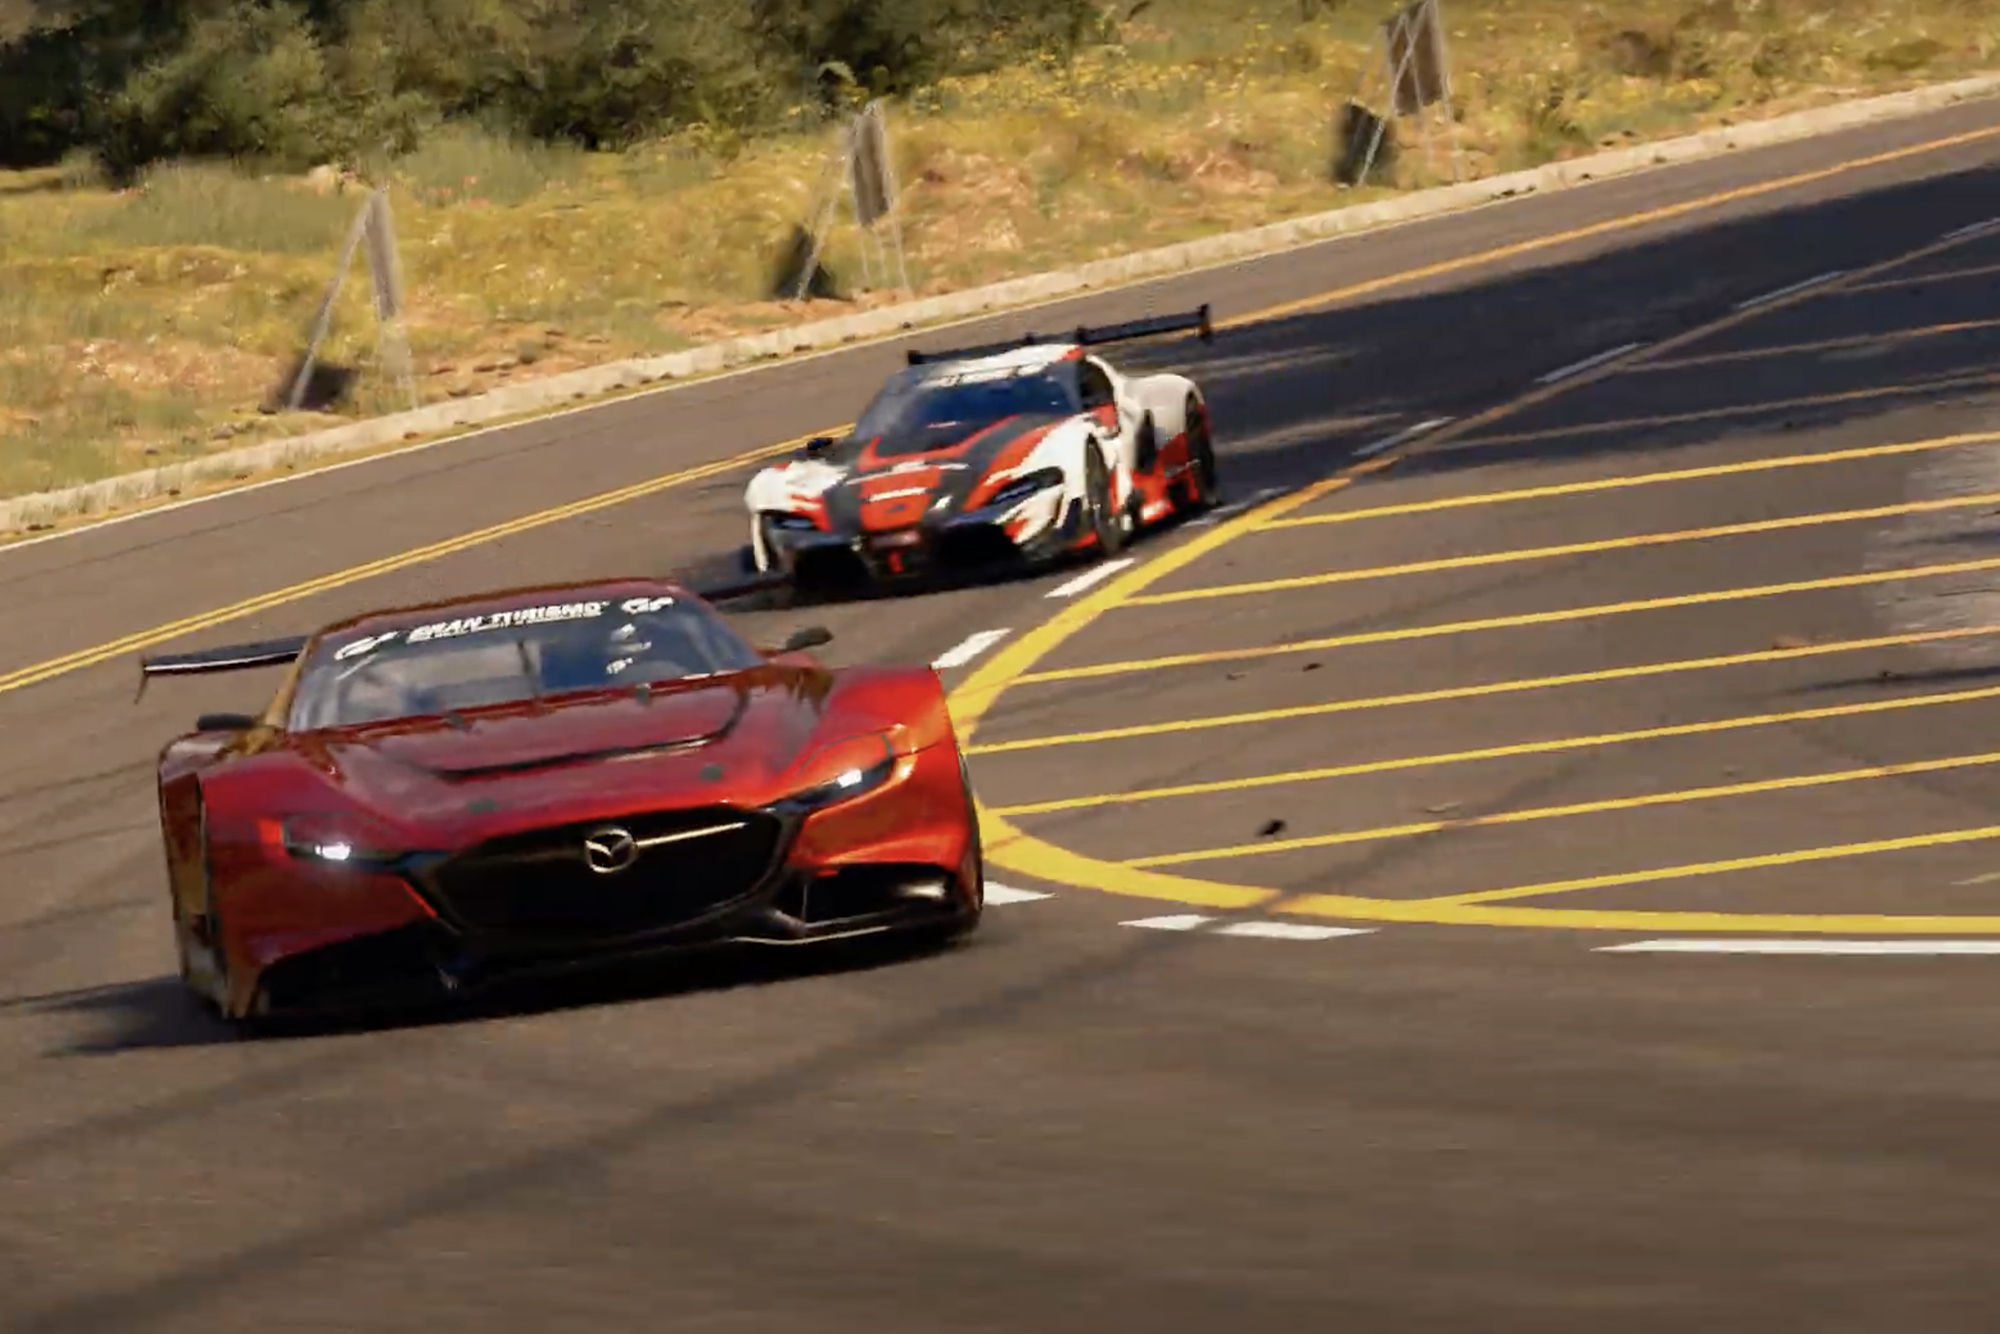 Video: Gran Turismo 7 revealed for PlayStation 5